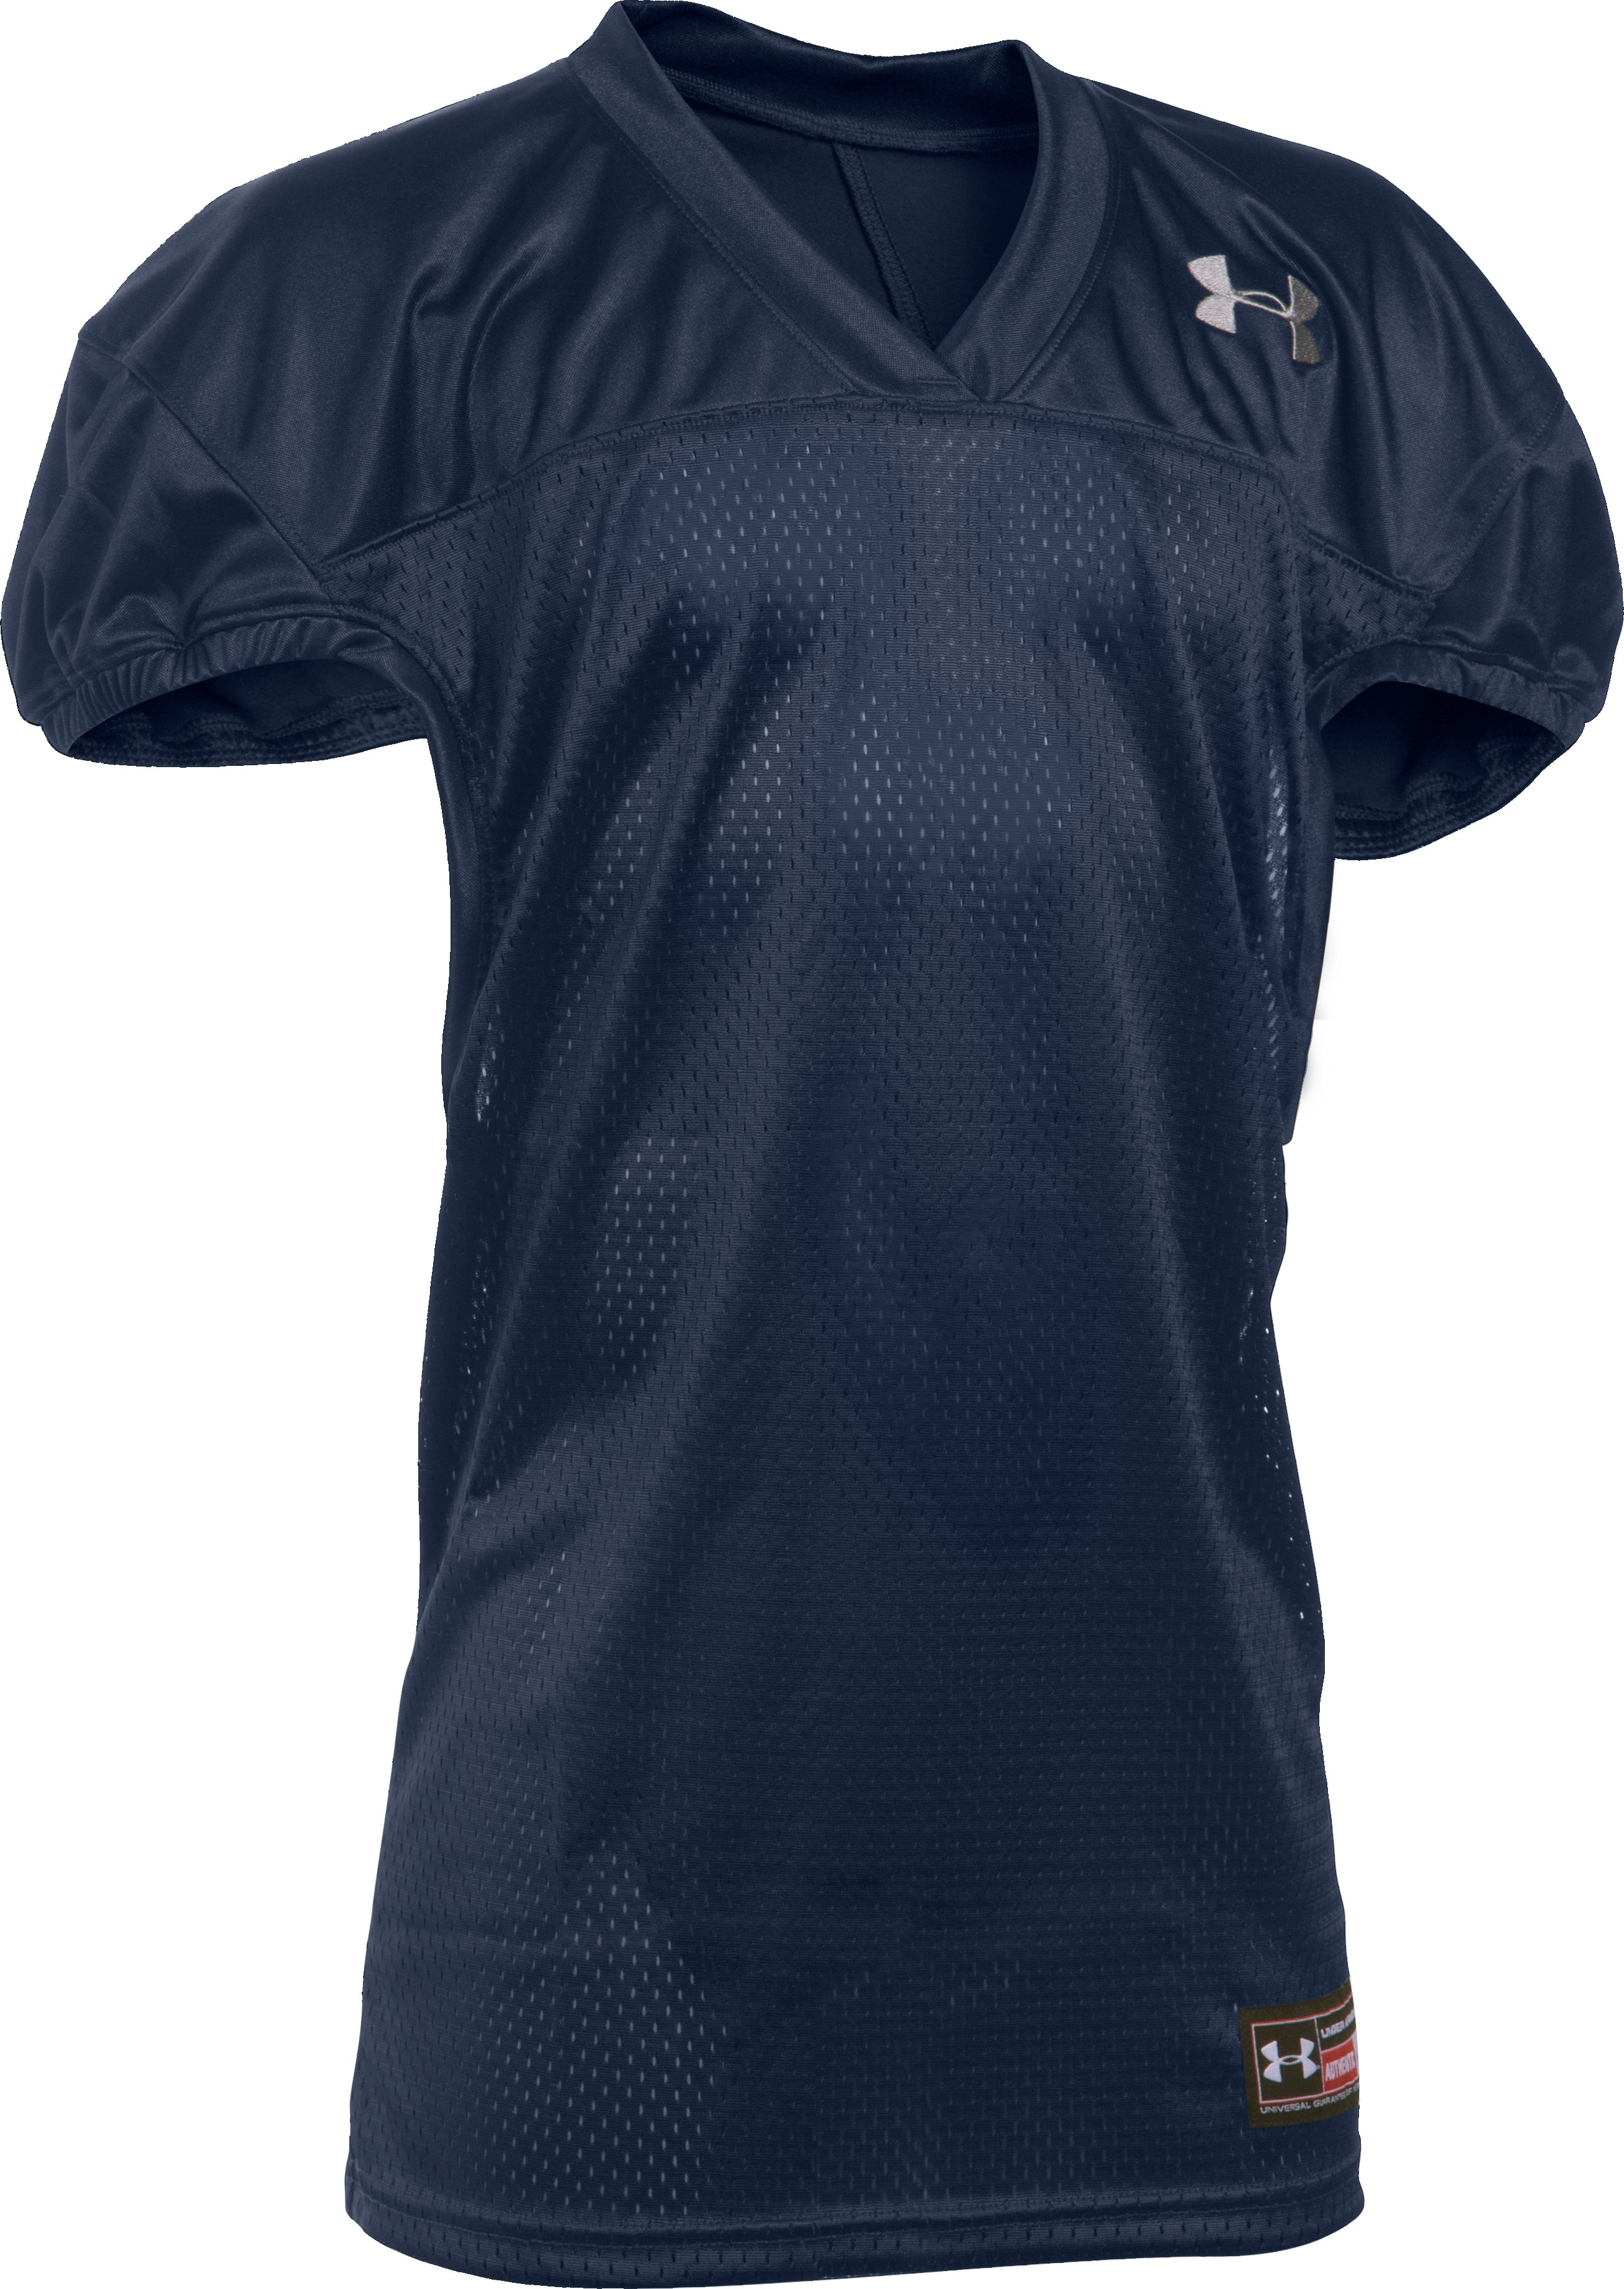 Boys' UA Football Jersey, Midnight Navy, zoomed image